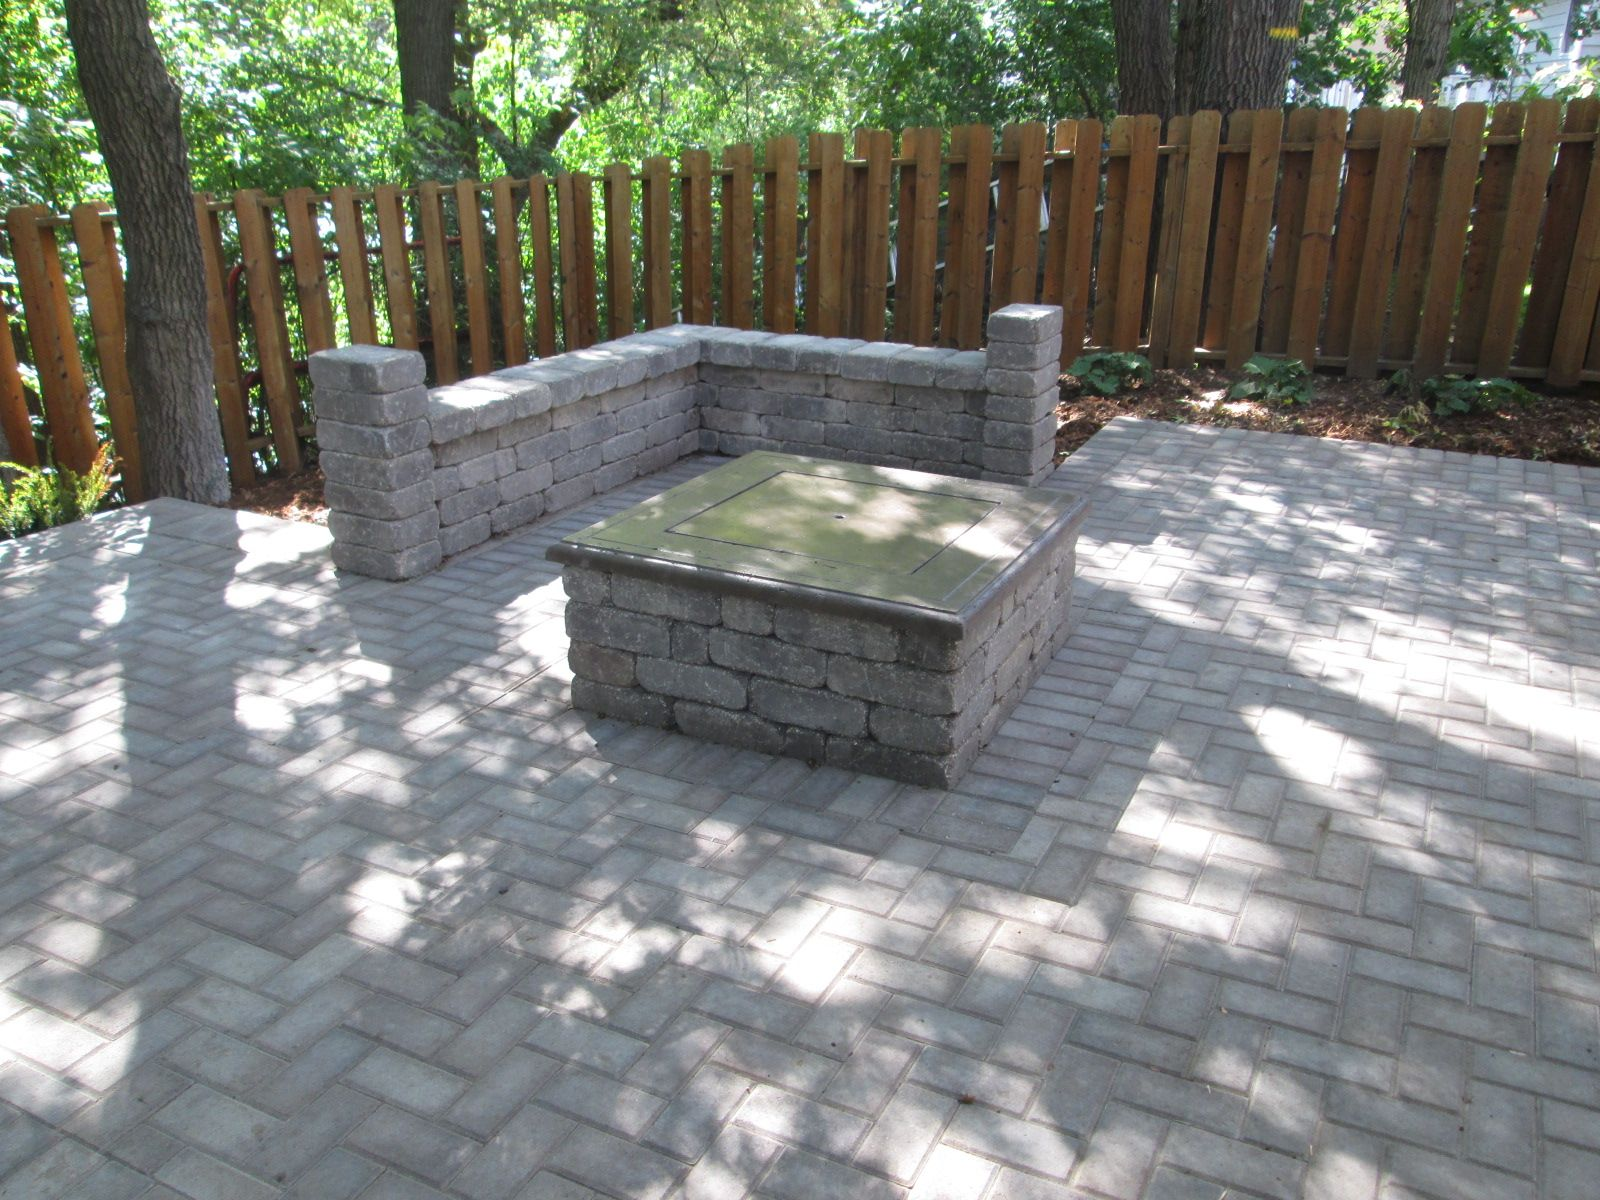 A Paver Sitting Wall And Fire Pit Design Installation By Barrett Lawn Care The Patio Uses Anchor Kingston Pavers Ironstone Color